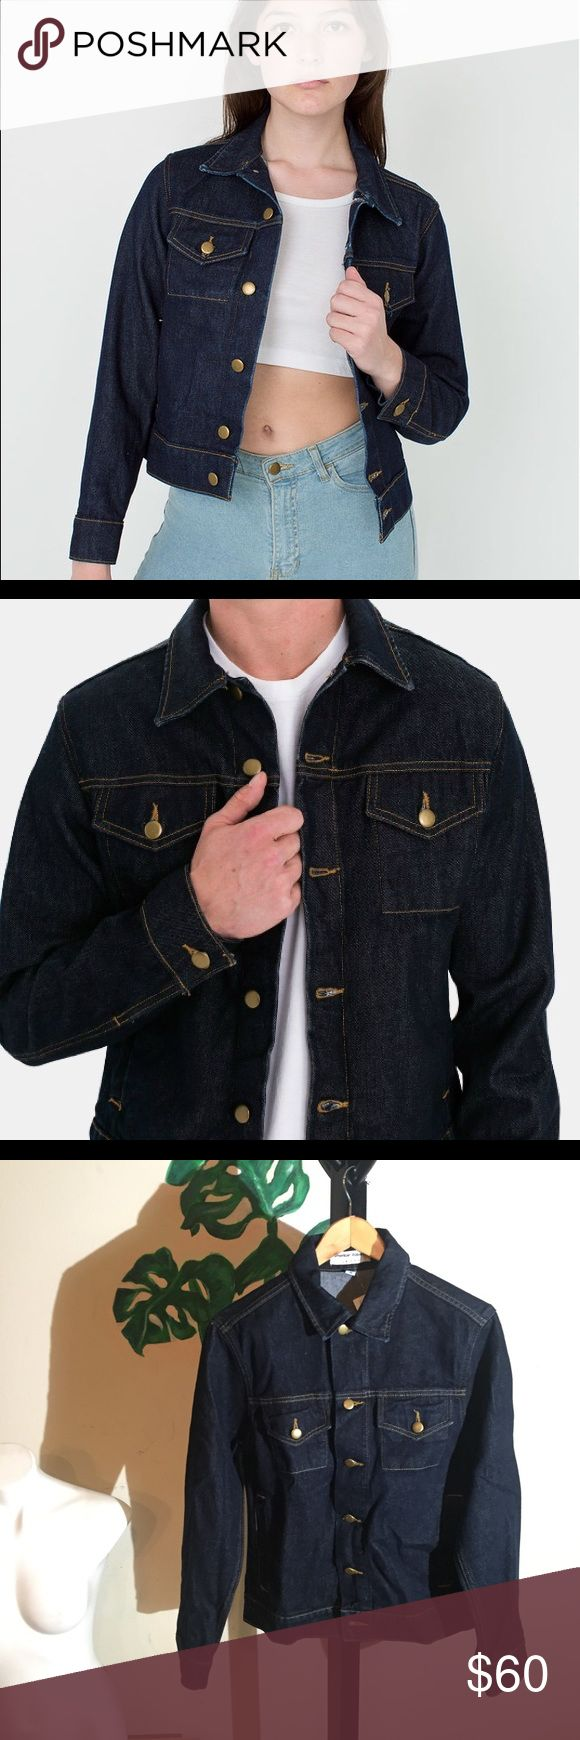 NEW UNISEX American Apparel Denim Jacket ***MAKE OFFER*** NEW UNISEX NEVER WORN American Apparel Denim Jacket (XS fits like a SMALL/MEDIUM - BE AWARE!!). These jackets run about 1.5 to 2 sizes big. It is, definitely, size-wise closer to men's than woman's as I usually wear a SMALL or MEDIUM in men and can fit in the XS! Beautiful jacket, well made, and will last forever! Start putting some of those patches on a jacket already, ya punk! MAKE AN OFFER American Apparel Jackets & Coats